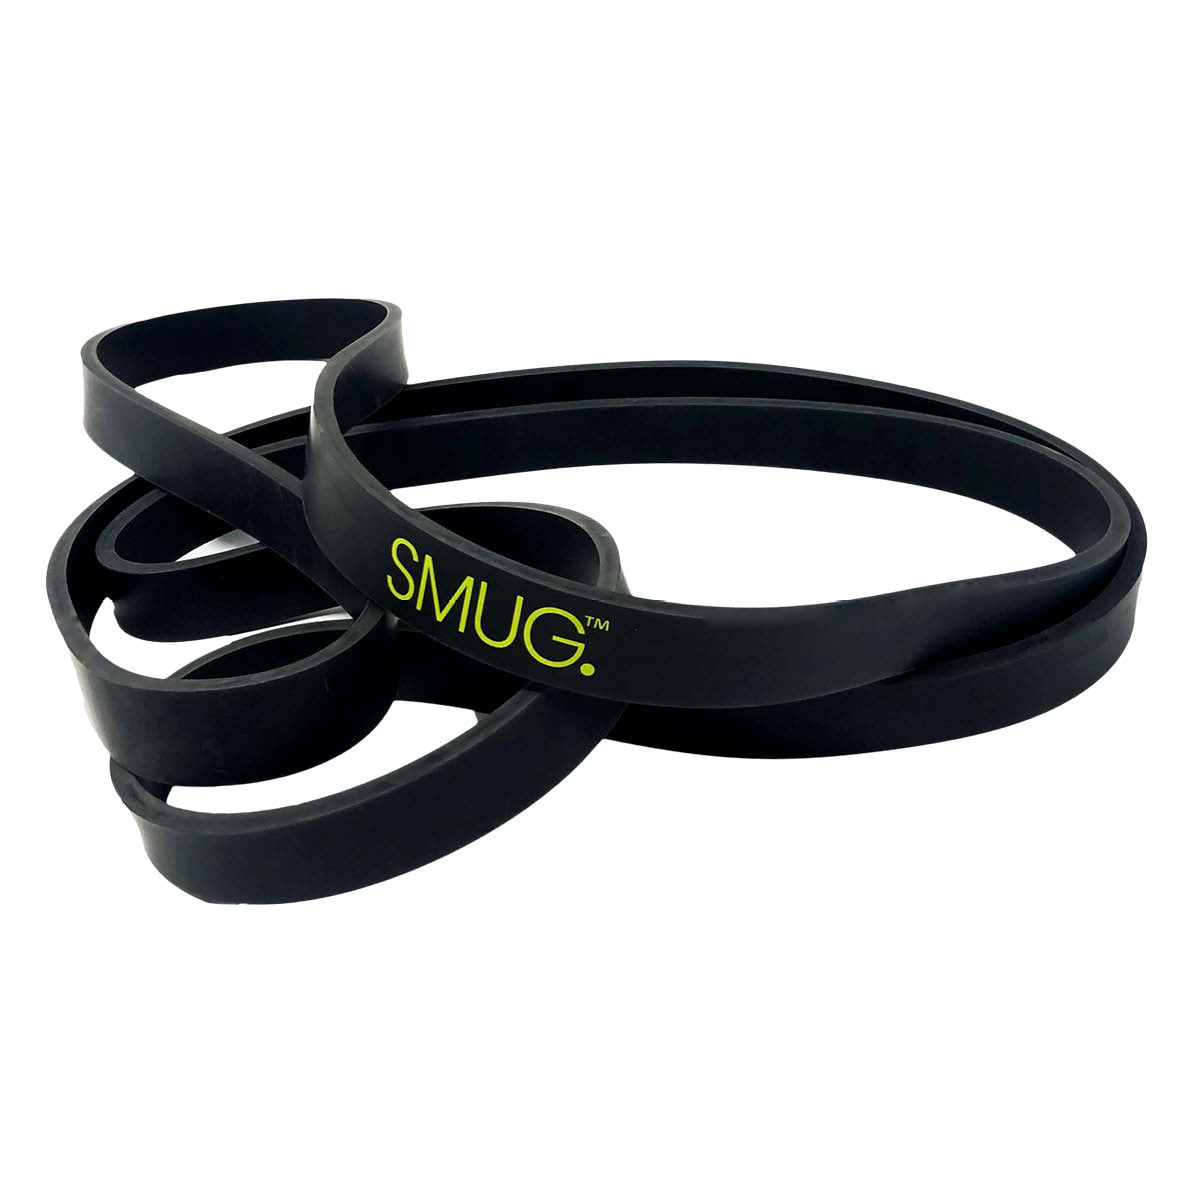 SMUG Active Pull-Up Resistance Band